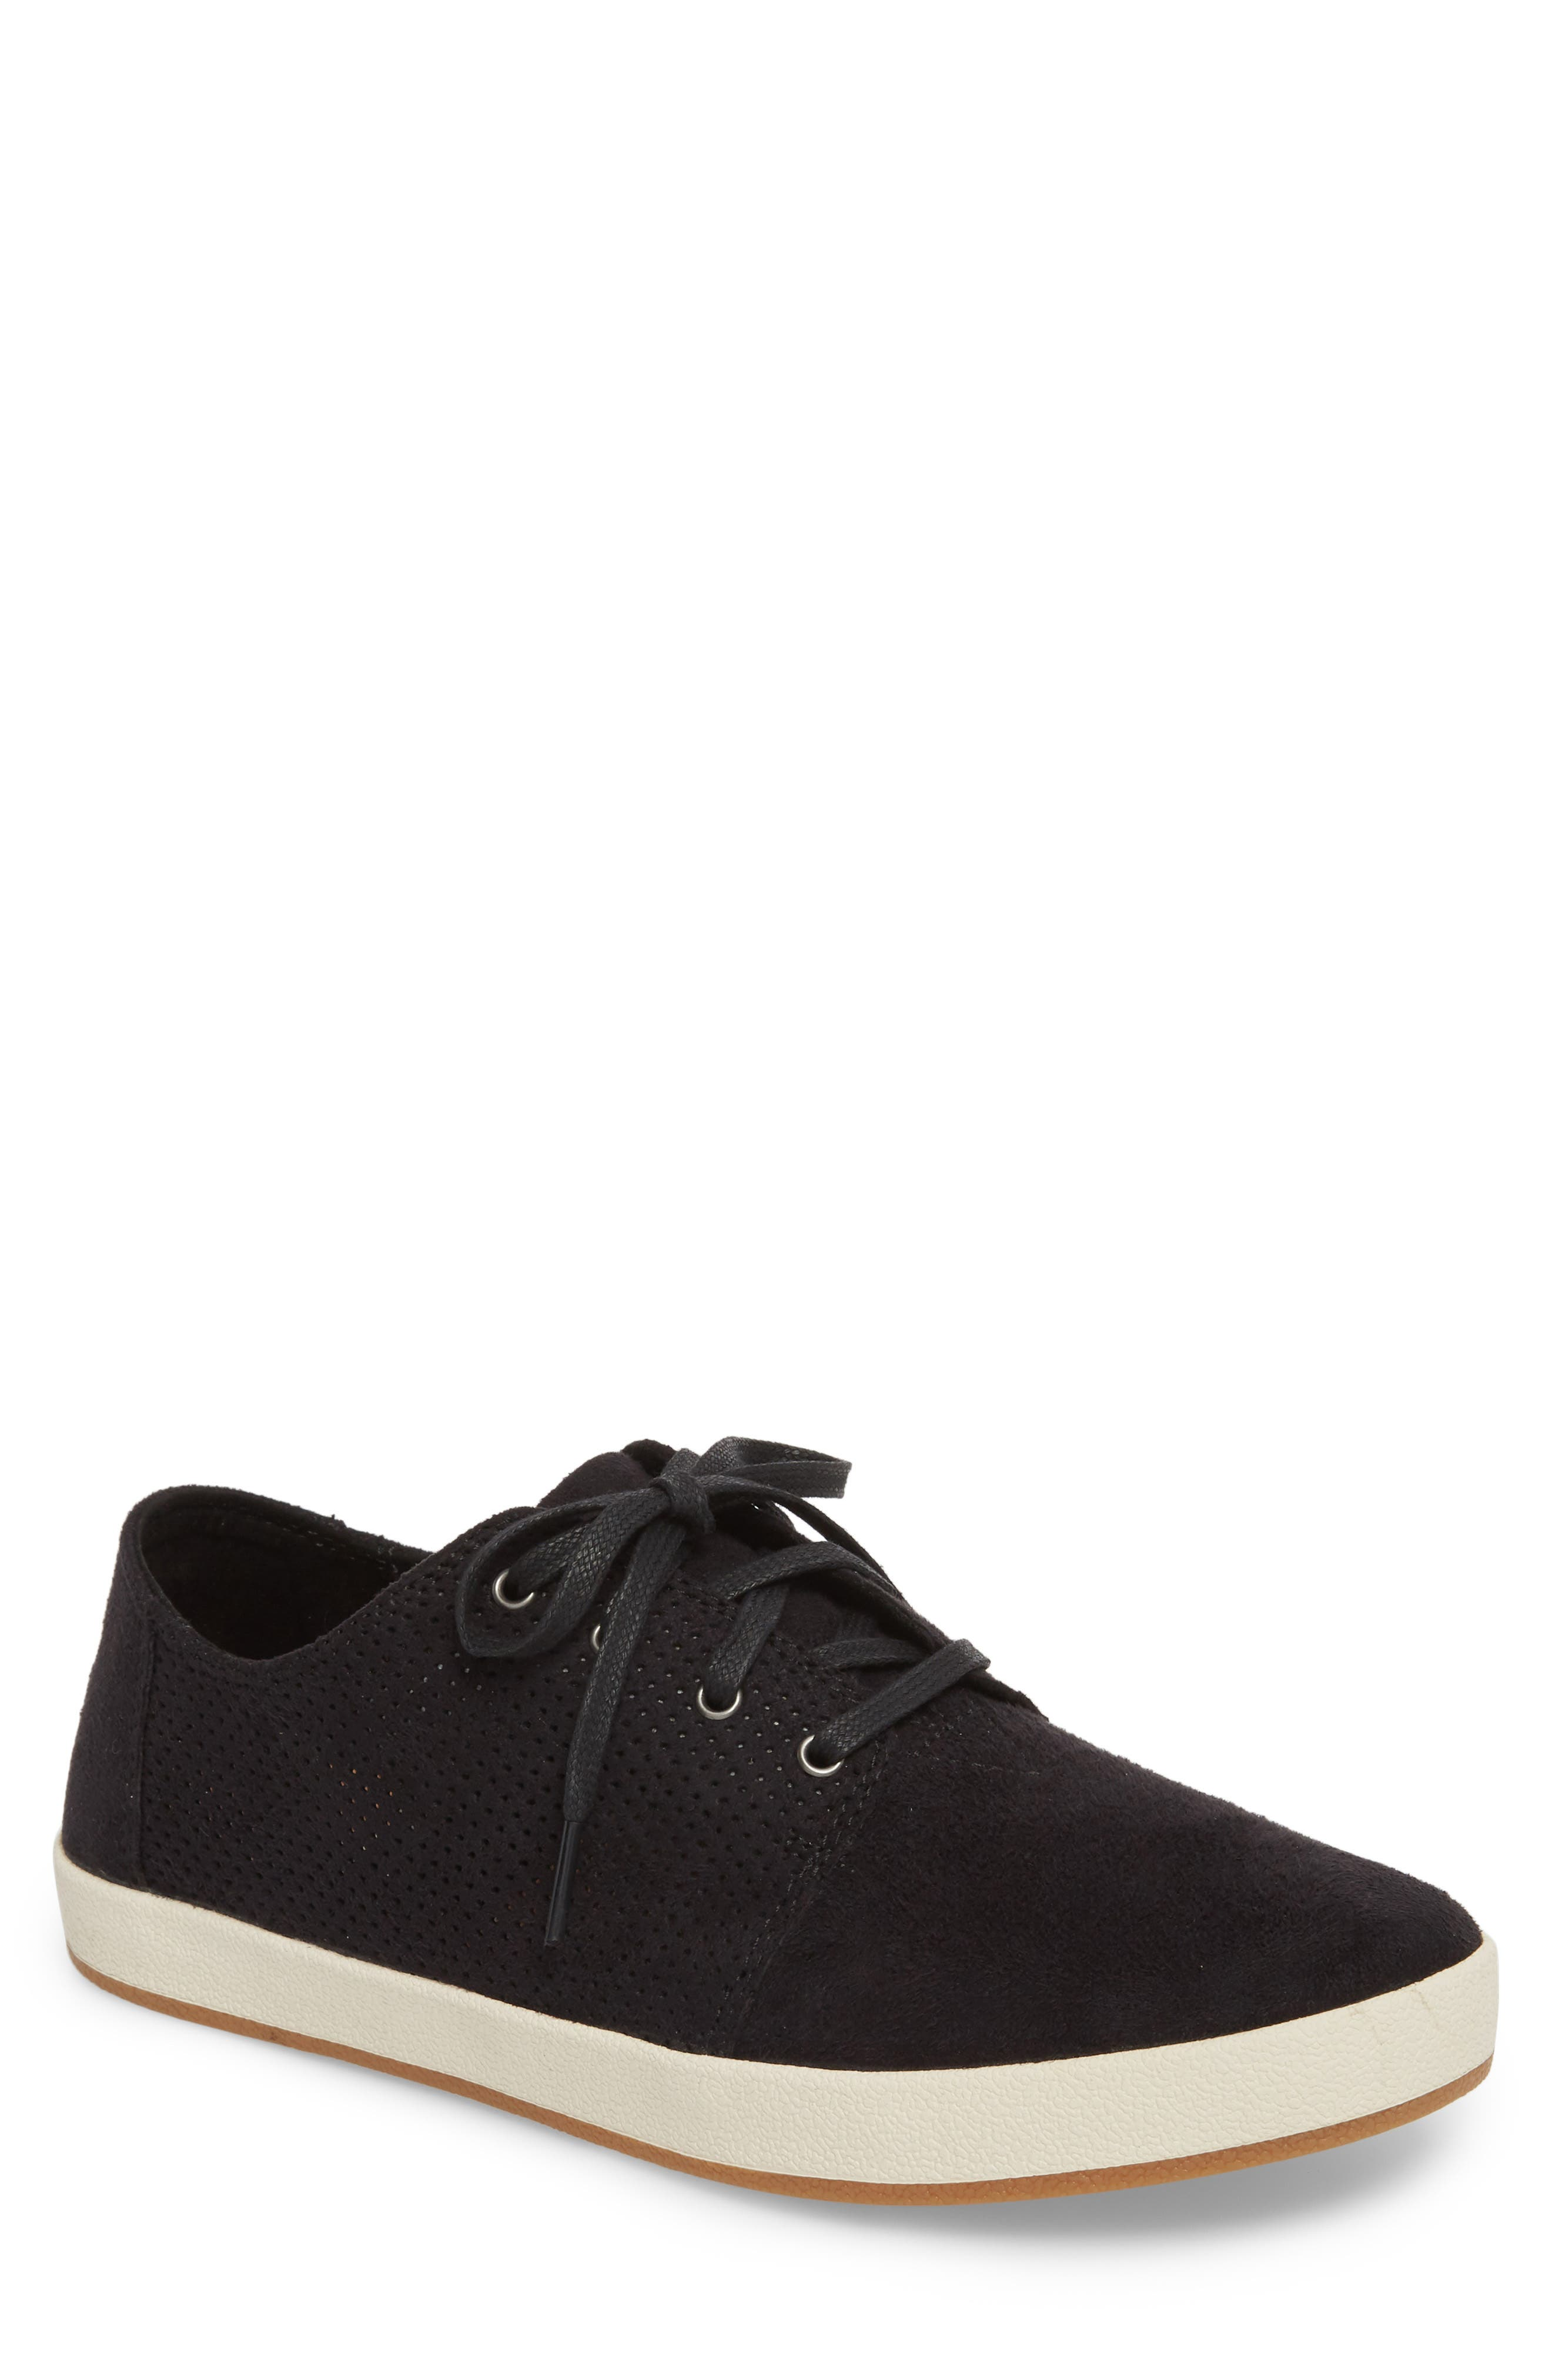 Payton Perforated Sneaker,                         Main,                         color, 001